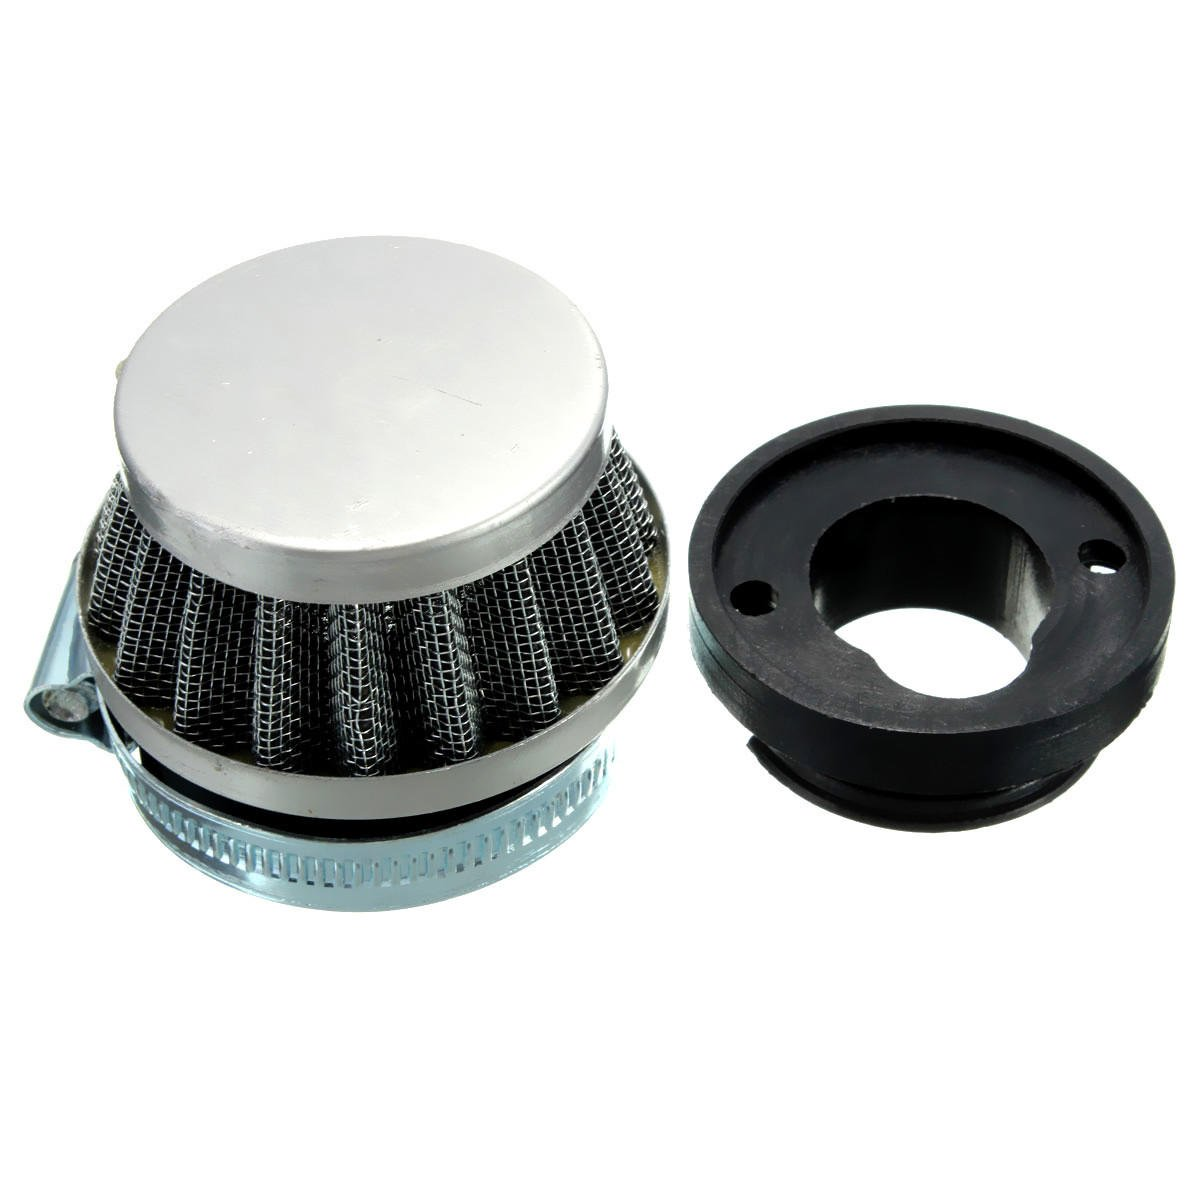 SGerste 47cc 49cc Air Filter 2 Stroke Engine Mini Moto Motorcycle Pocket Dirt Bike Quad ATV